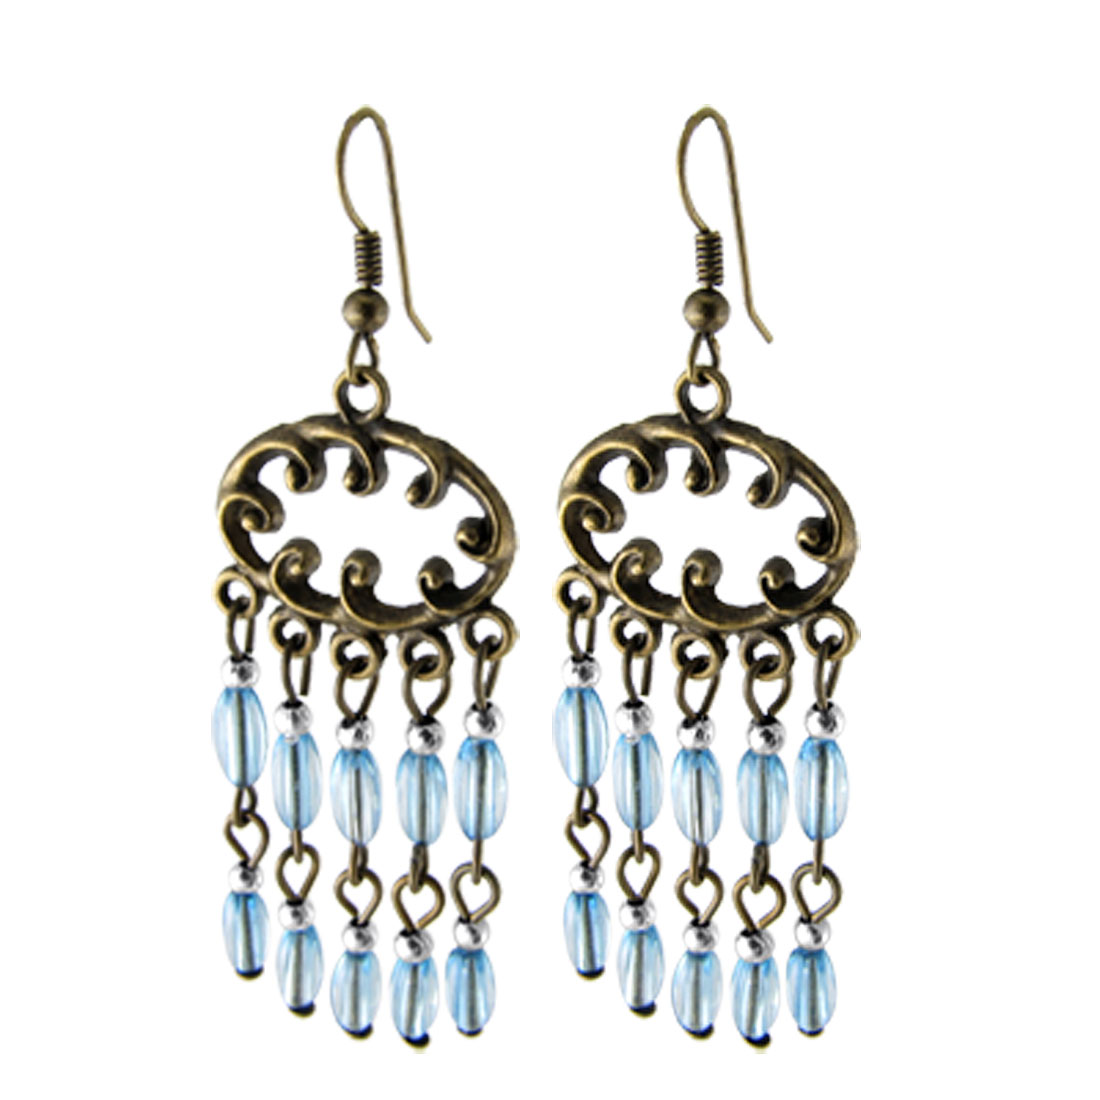 Dangling Clear Light Blue Plastic Beads Decor Bronze Tone Metal Earrings for Ladies